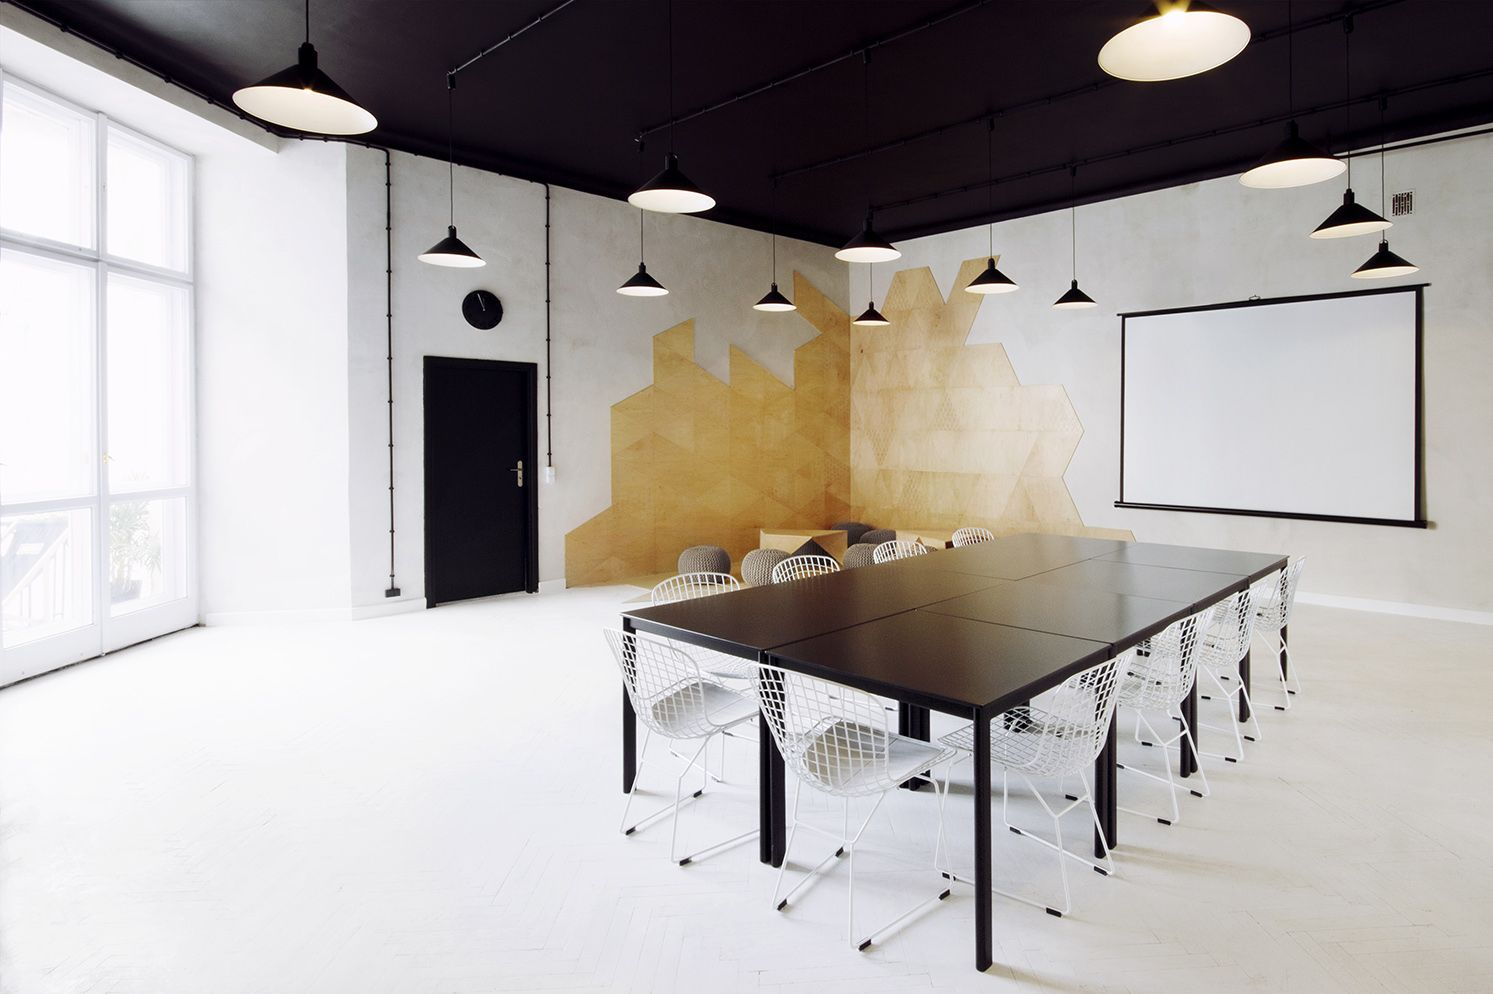 Conference Room Design Ideas small conference room design ideas executive conference room floor designs Interior Contemporary Meeting Room Design Ideas Pendant Lamp Brown Table Chairs White Flooring Glass Window